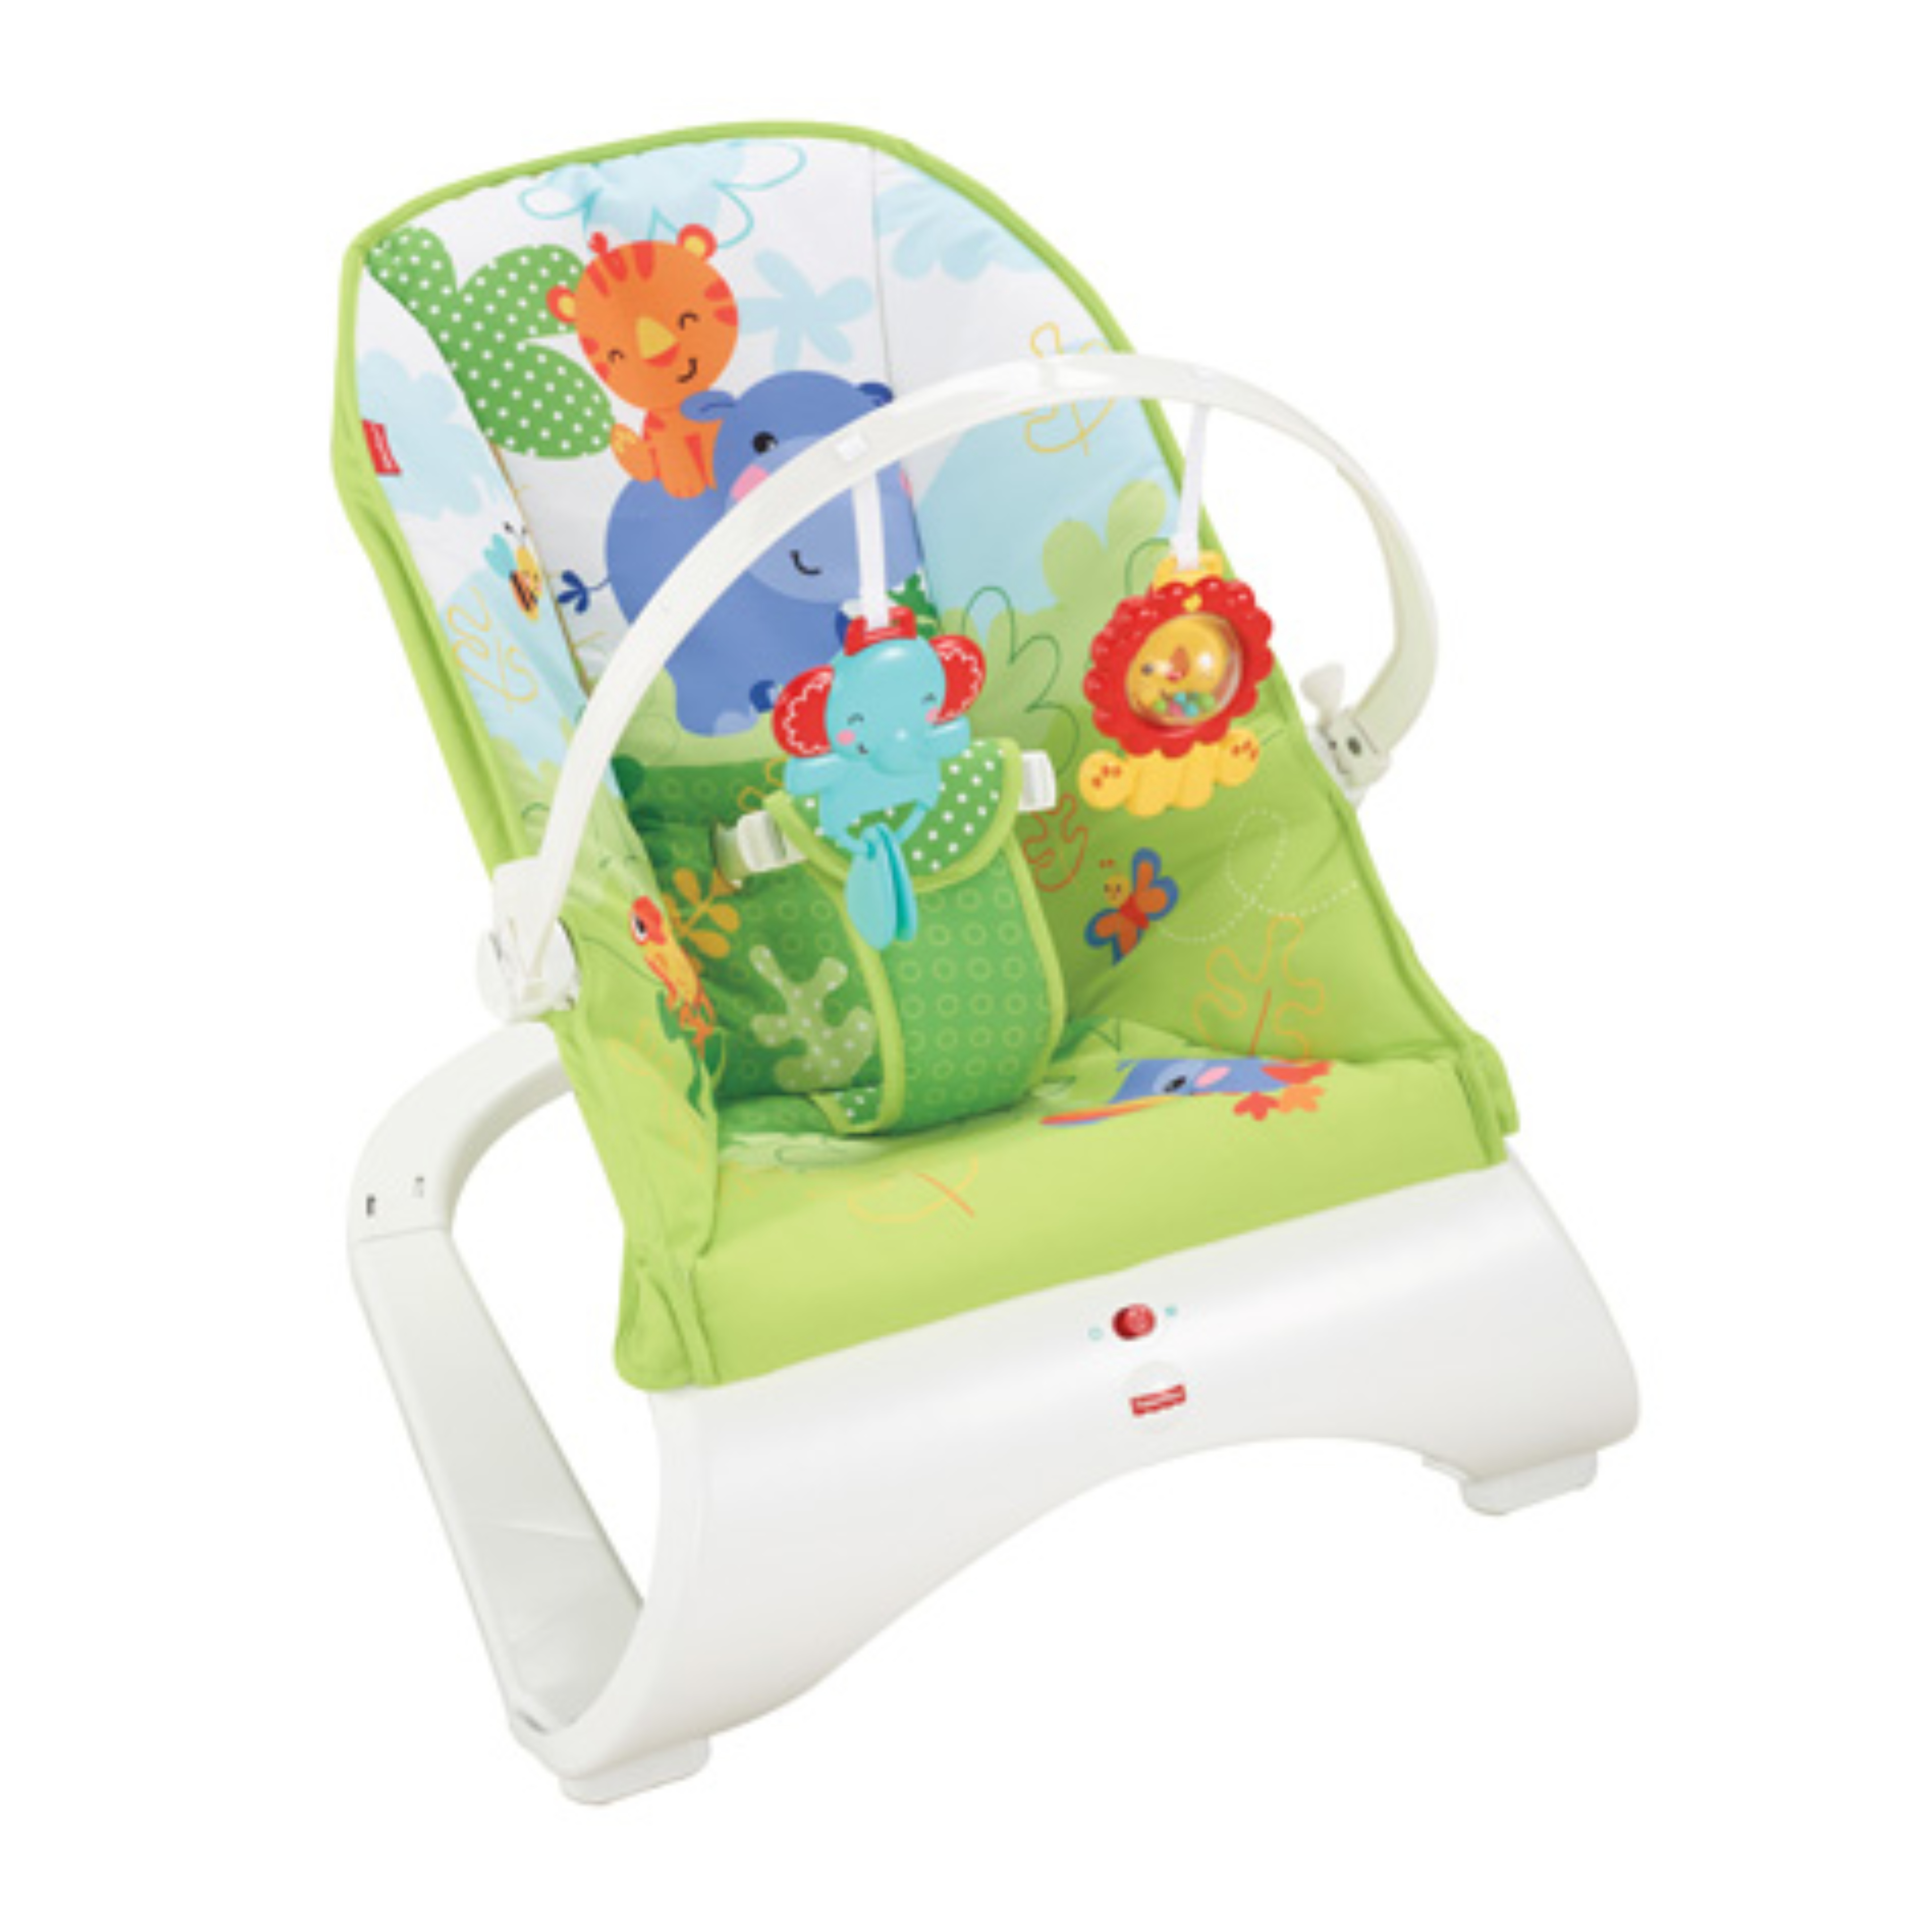 Baby Swings Baby Gear Fisher-price Rainforest New-born Baby Bouncer/rocker/chair With Vibration+toybar